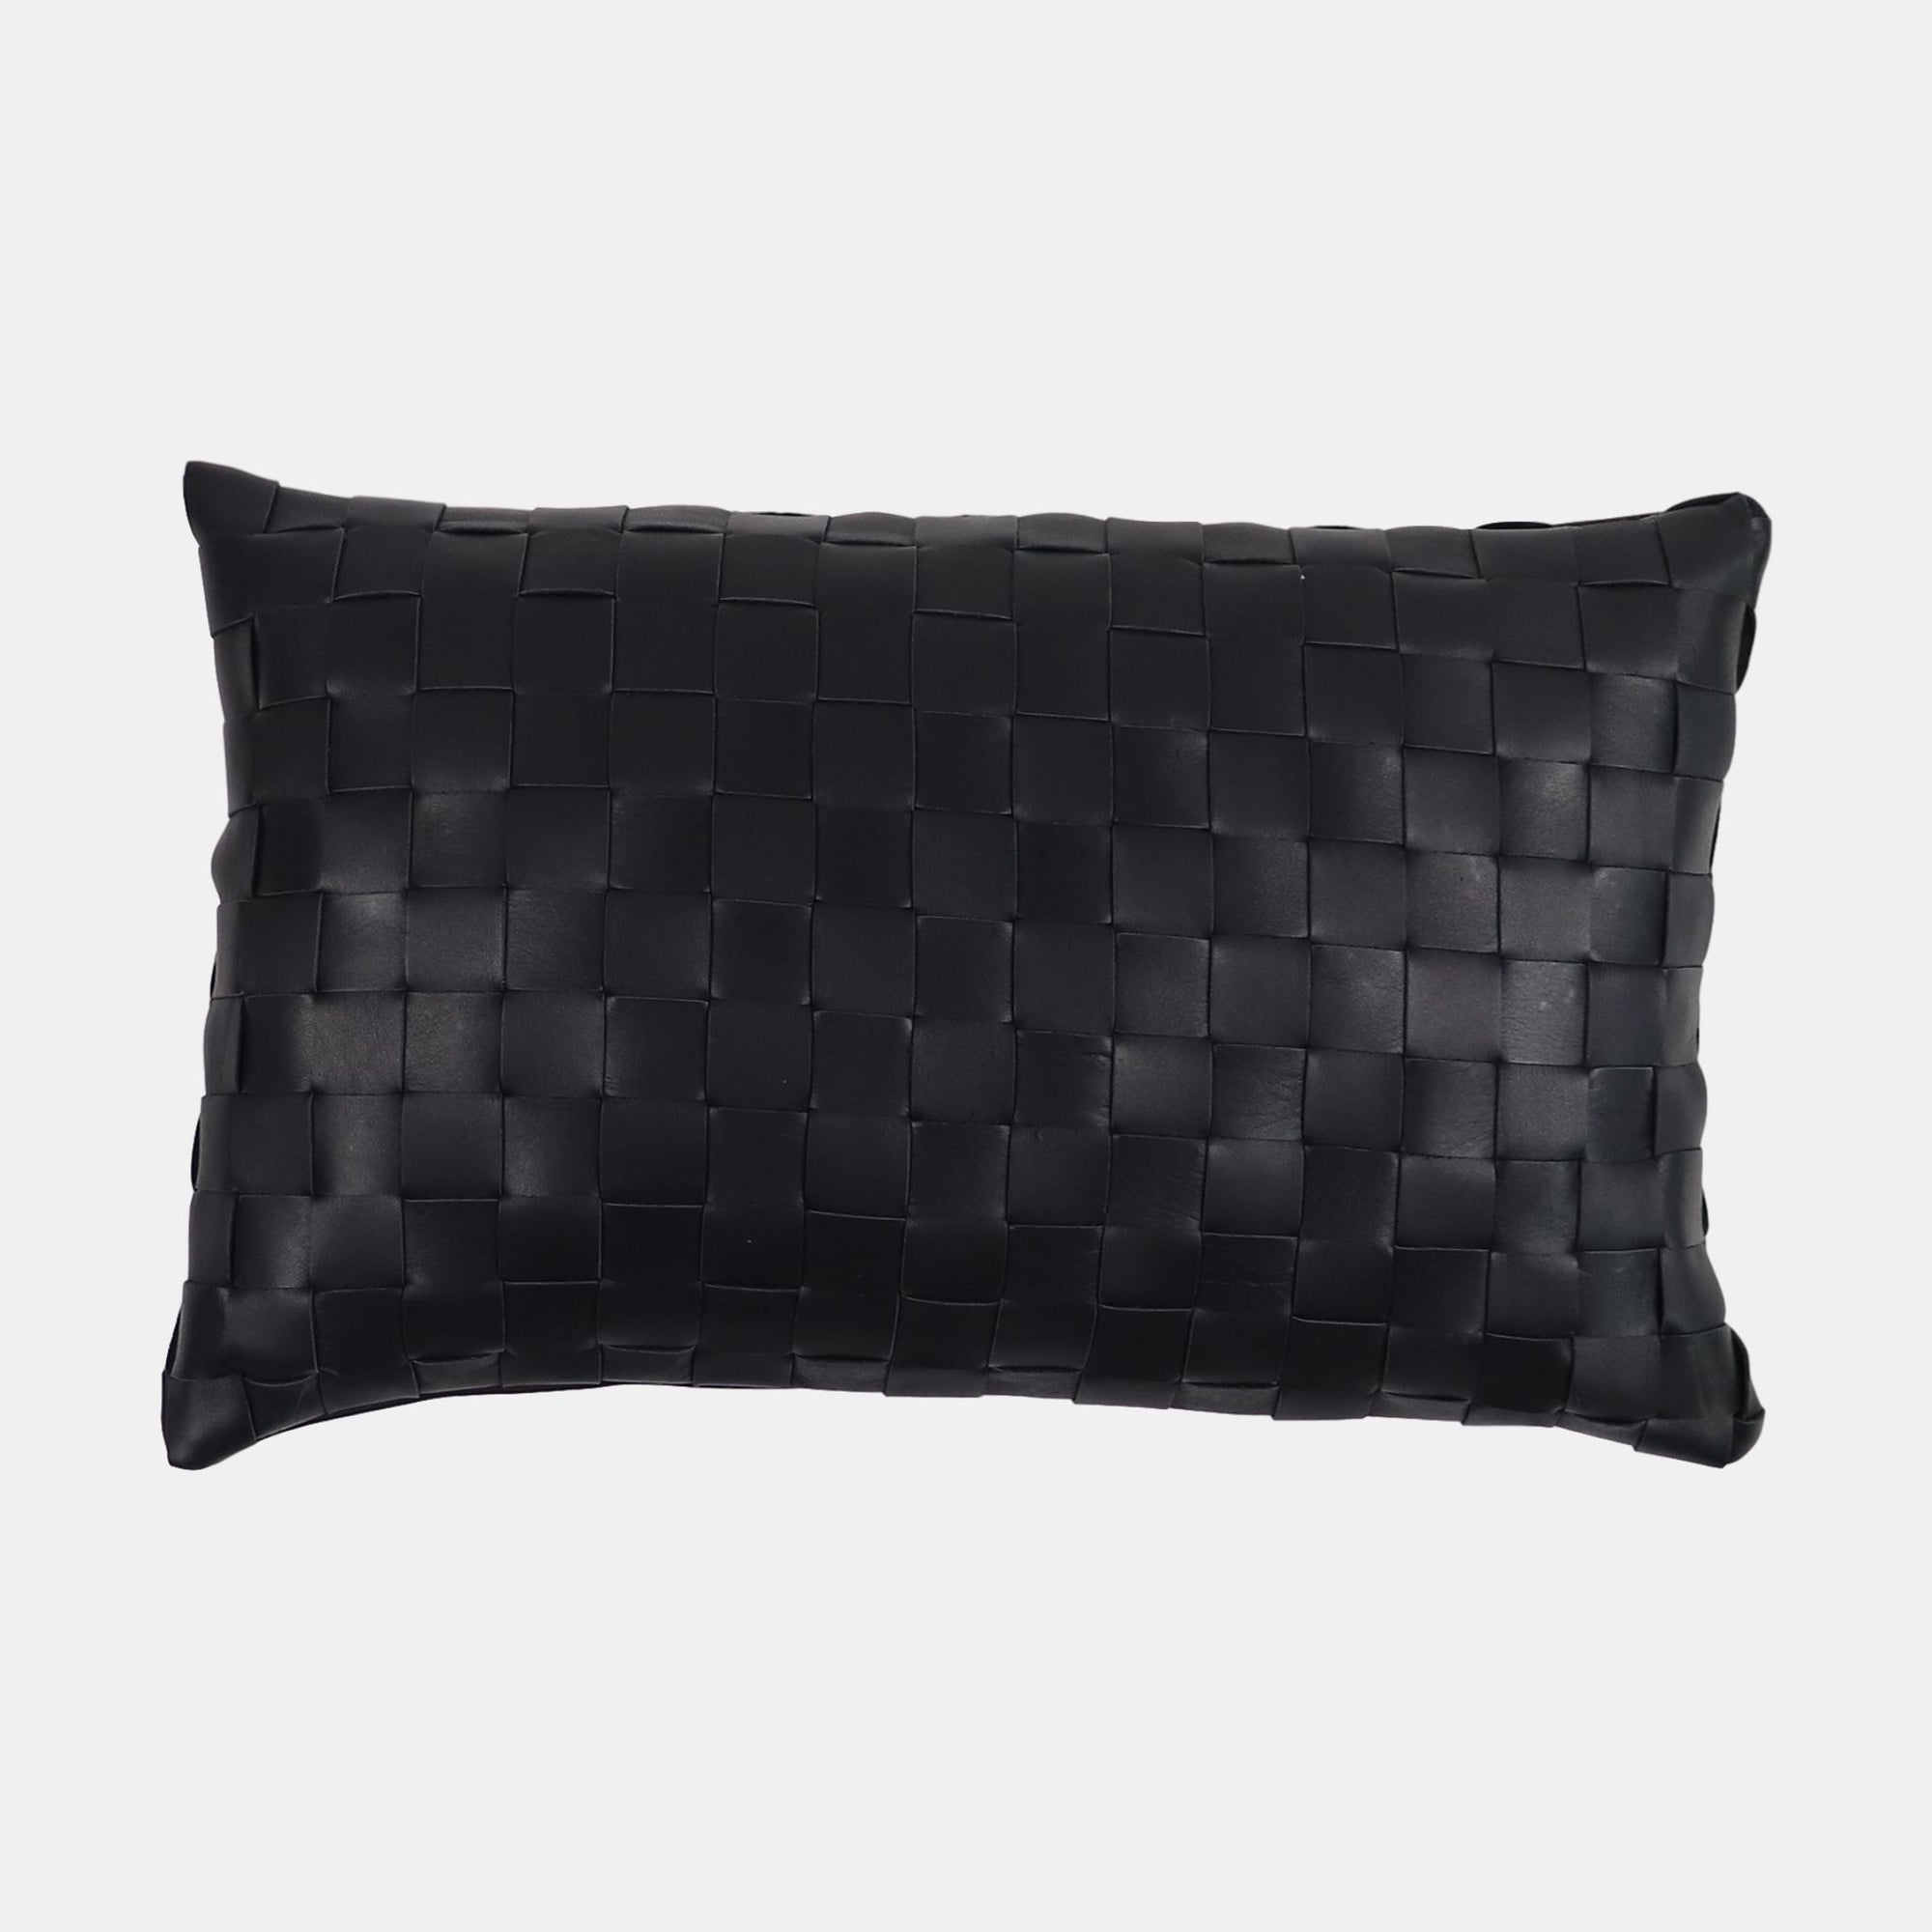 CALABASAS Leather Pillow Cover